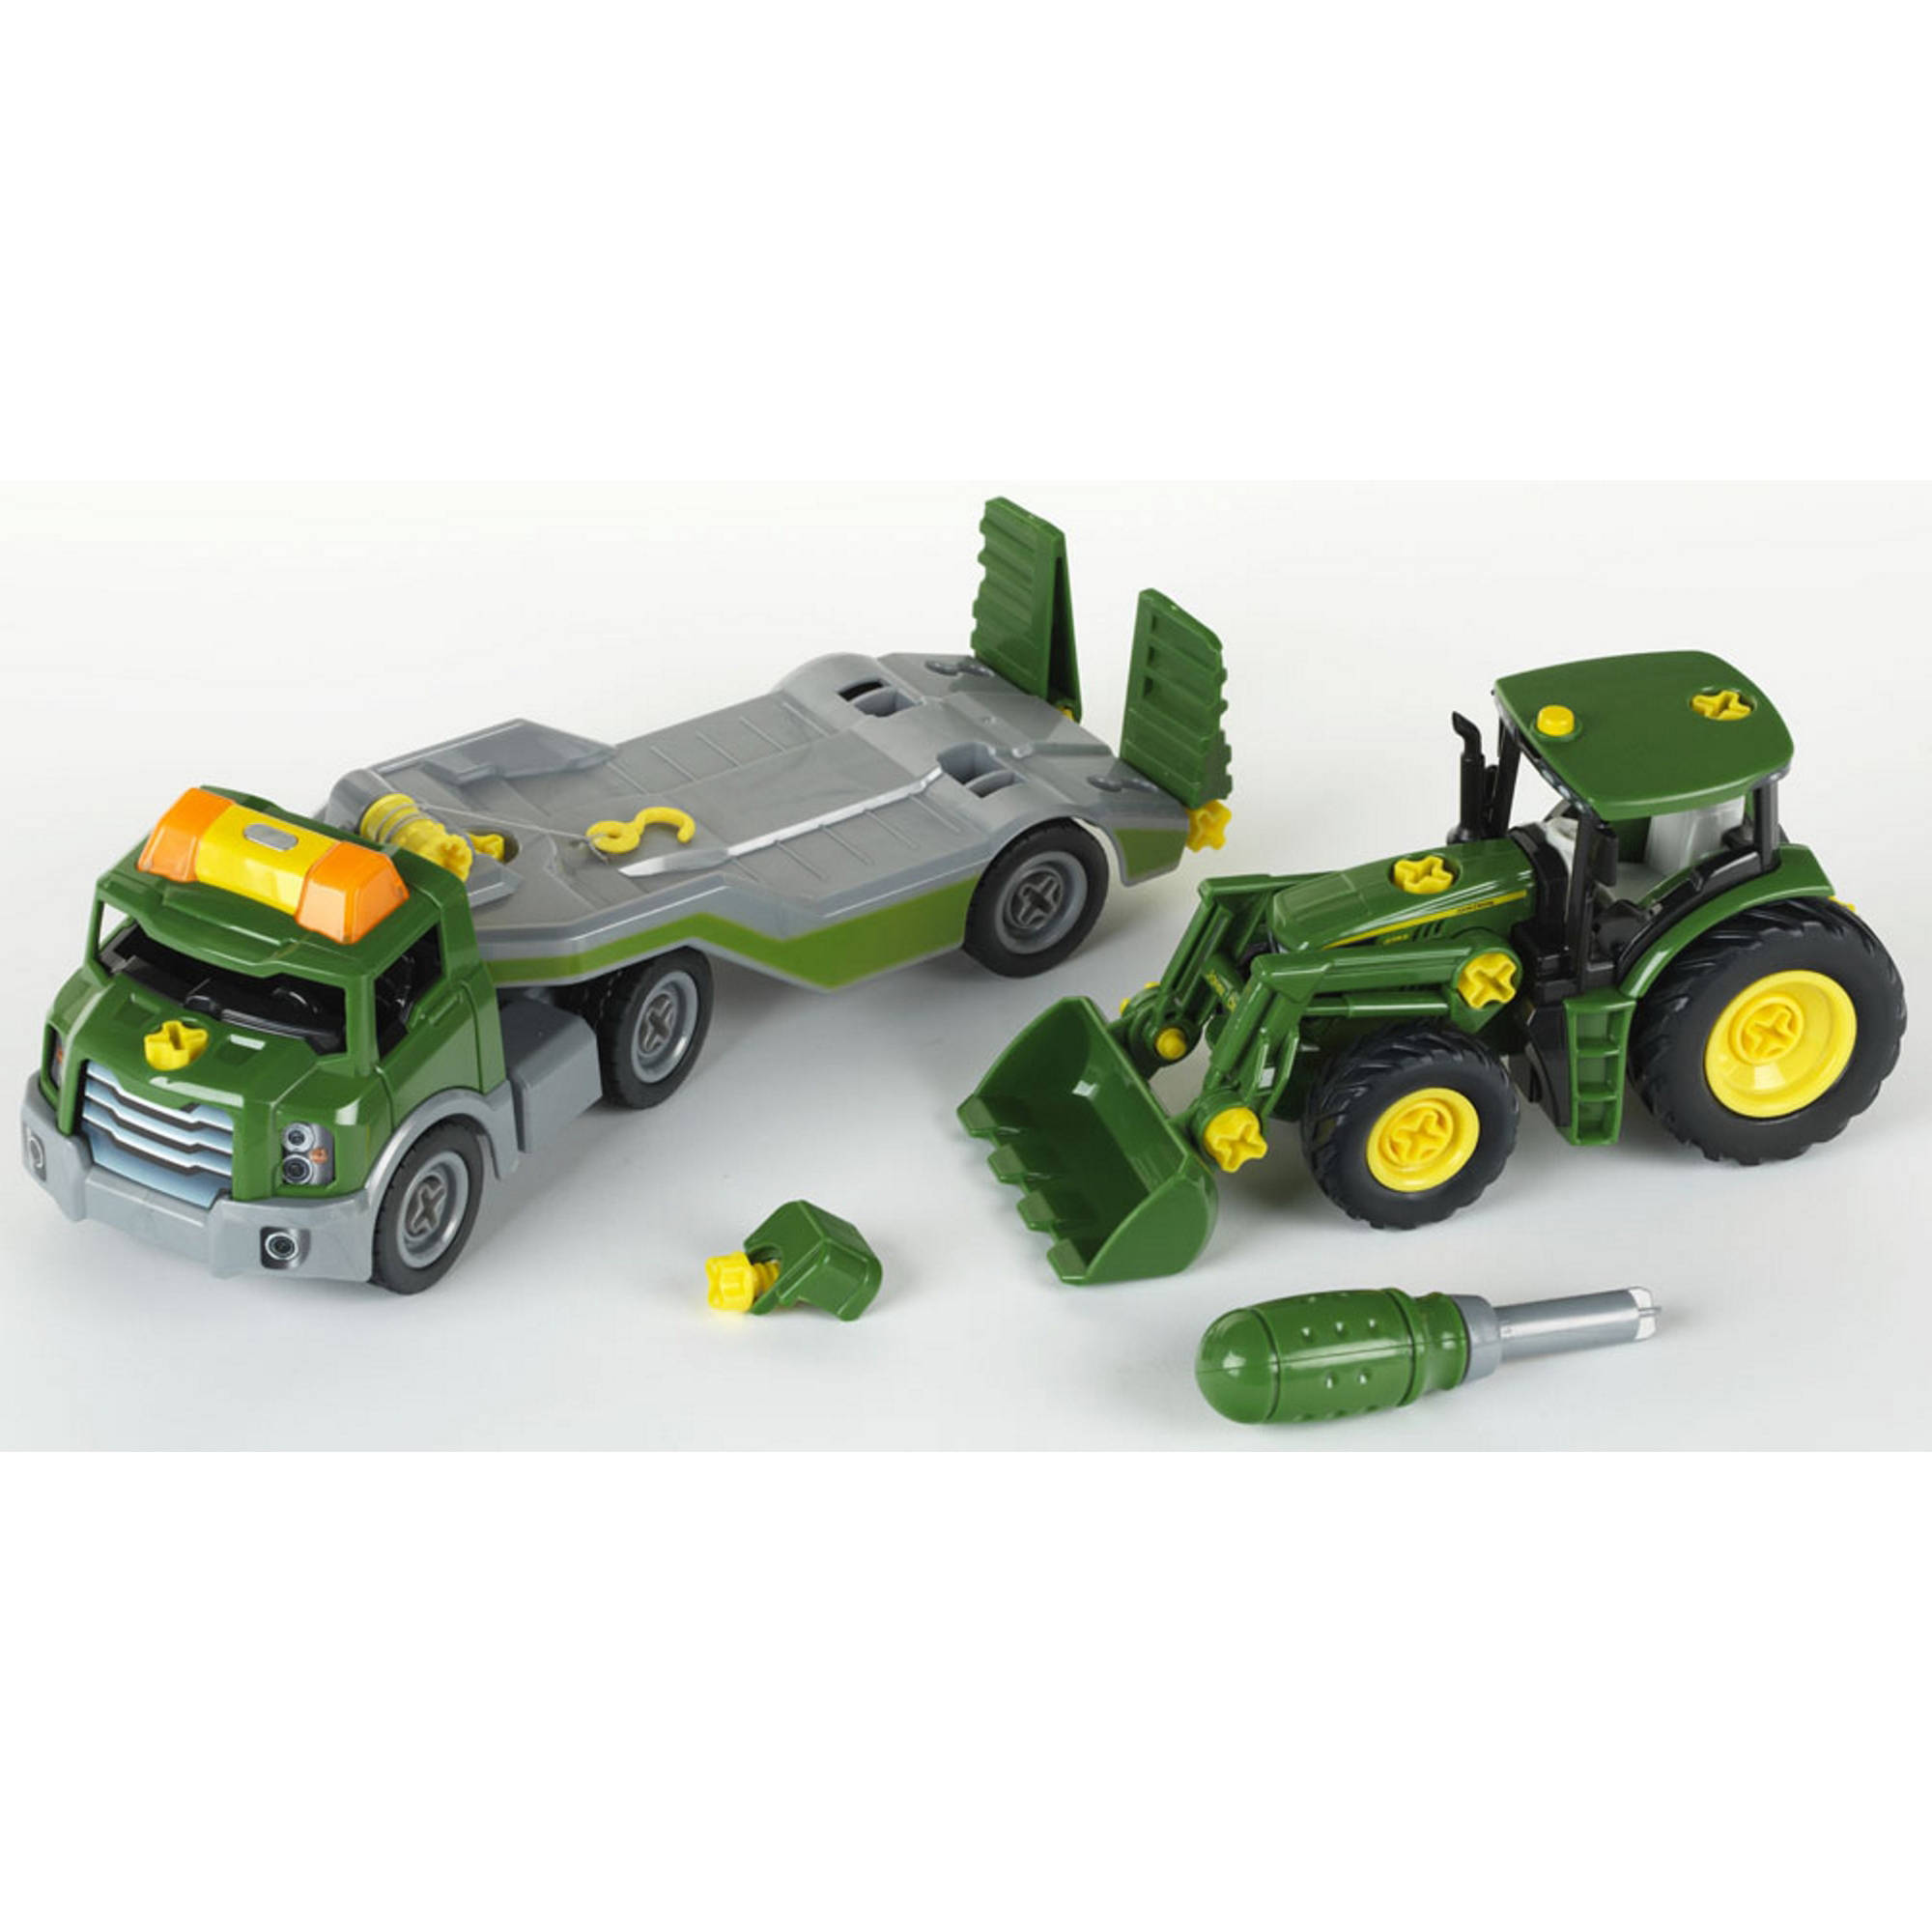 Theo Klein John Deere Take A Part Transporter with John Deere Take A Part Tractor